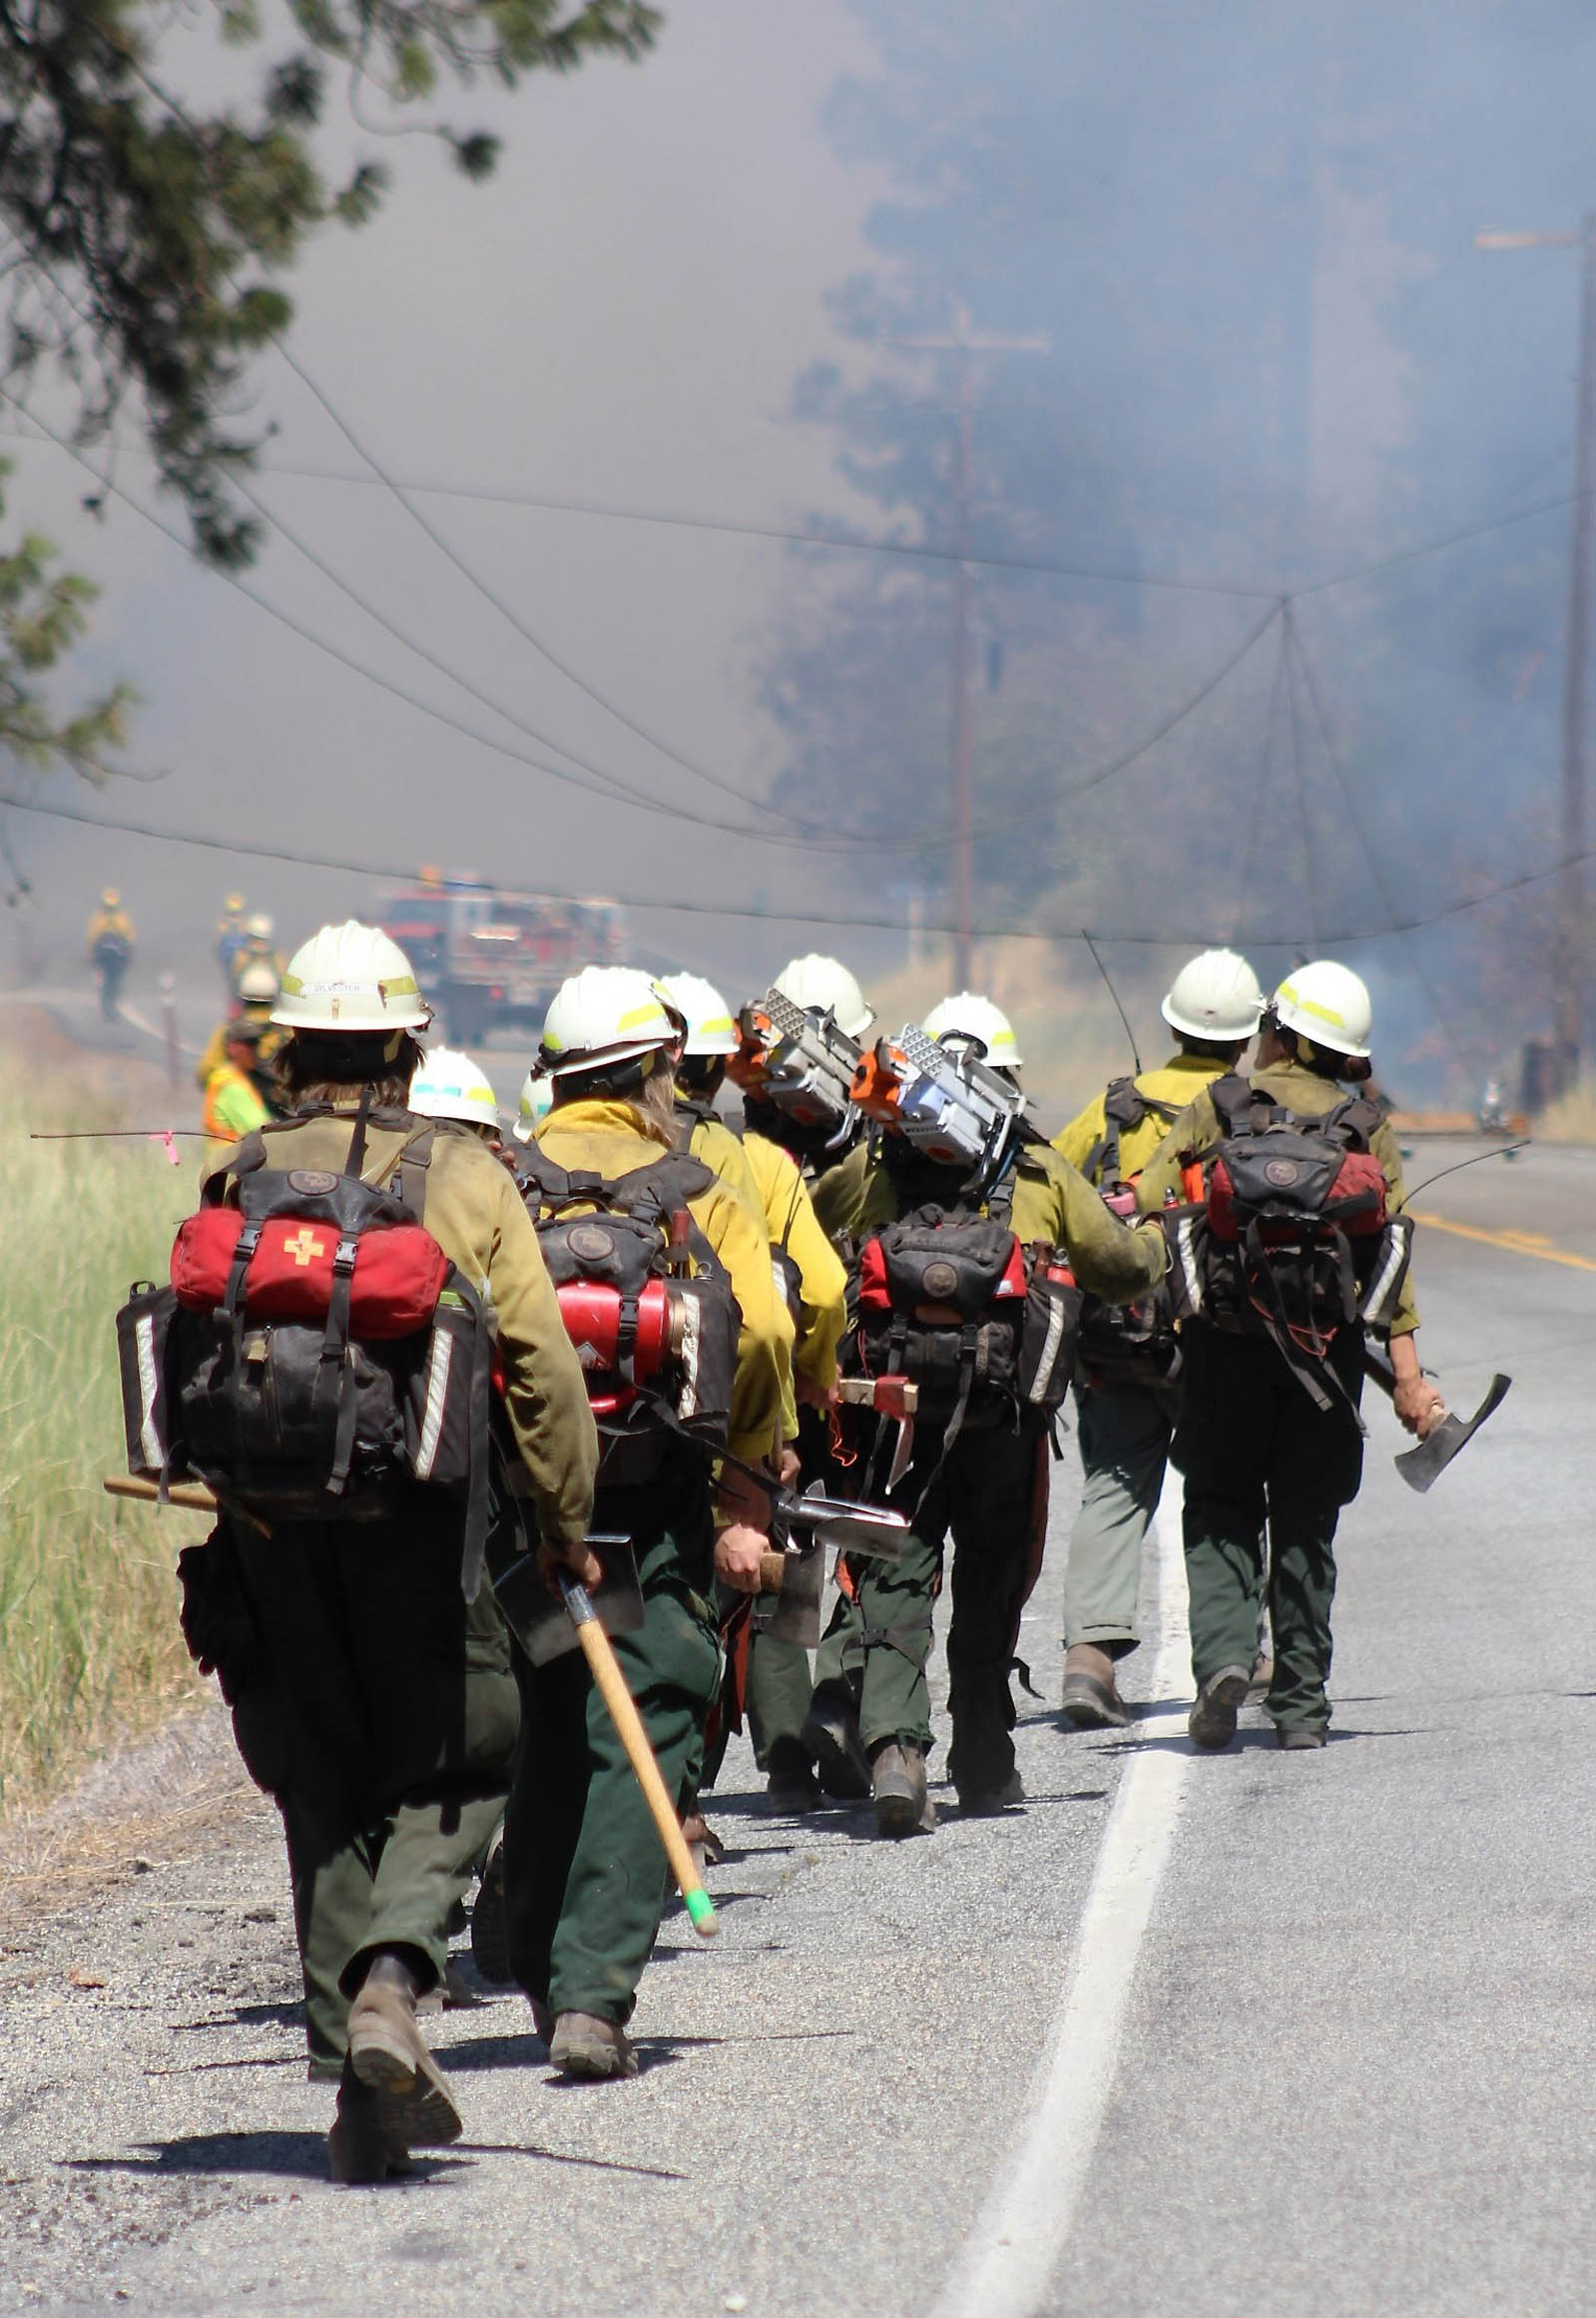 Firefighters move out along the west side of Highway 153 shortly after flames crossed the road north of their march.